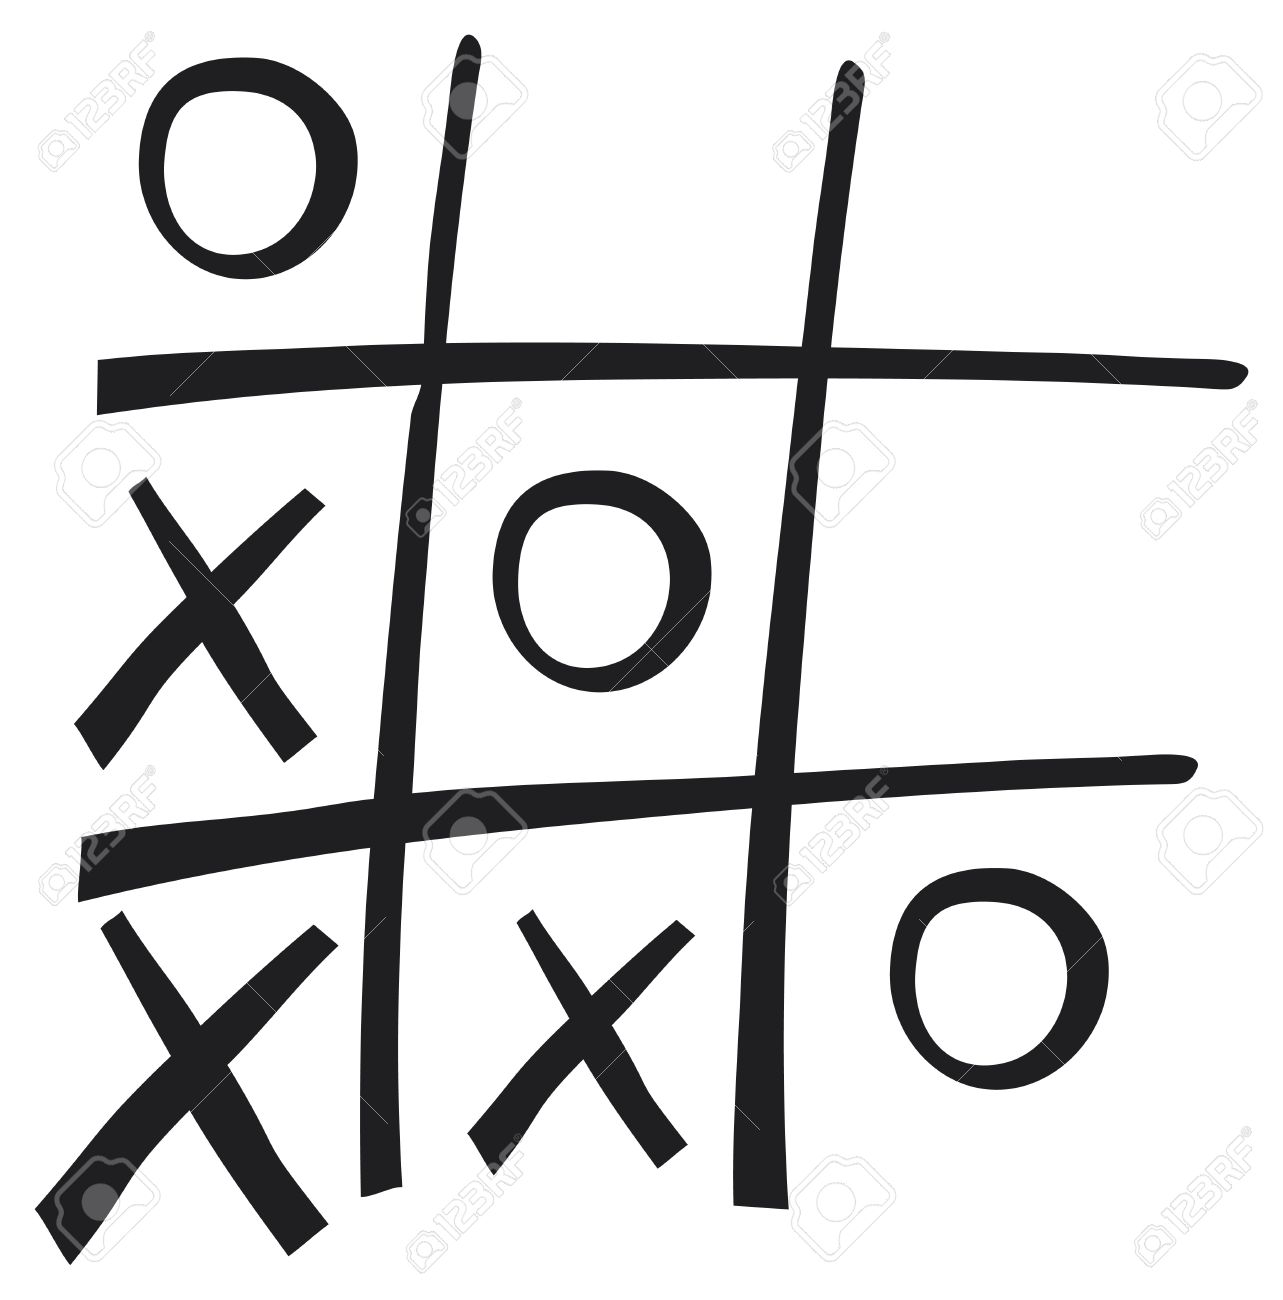 Hand Drawn Tic Tac Toe Game Royalty Free Cliparts Vectors And Stock Illustration Image 21060625